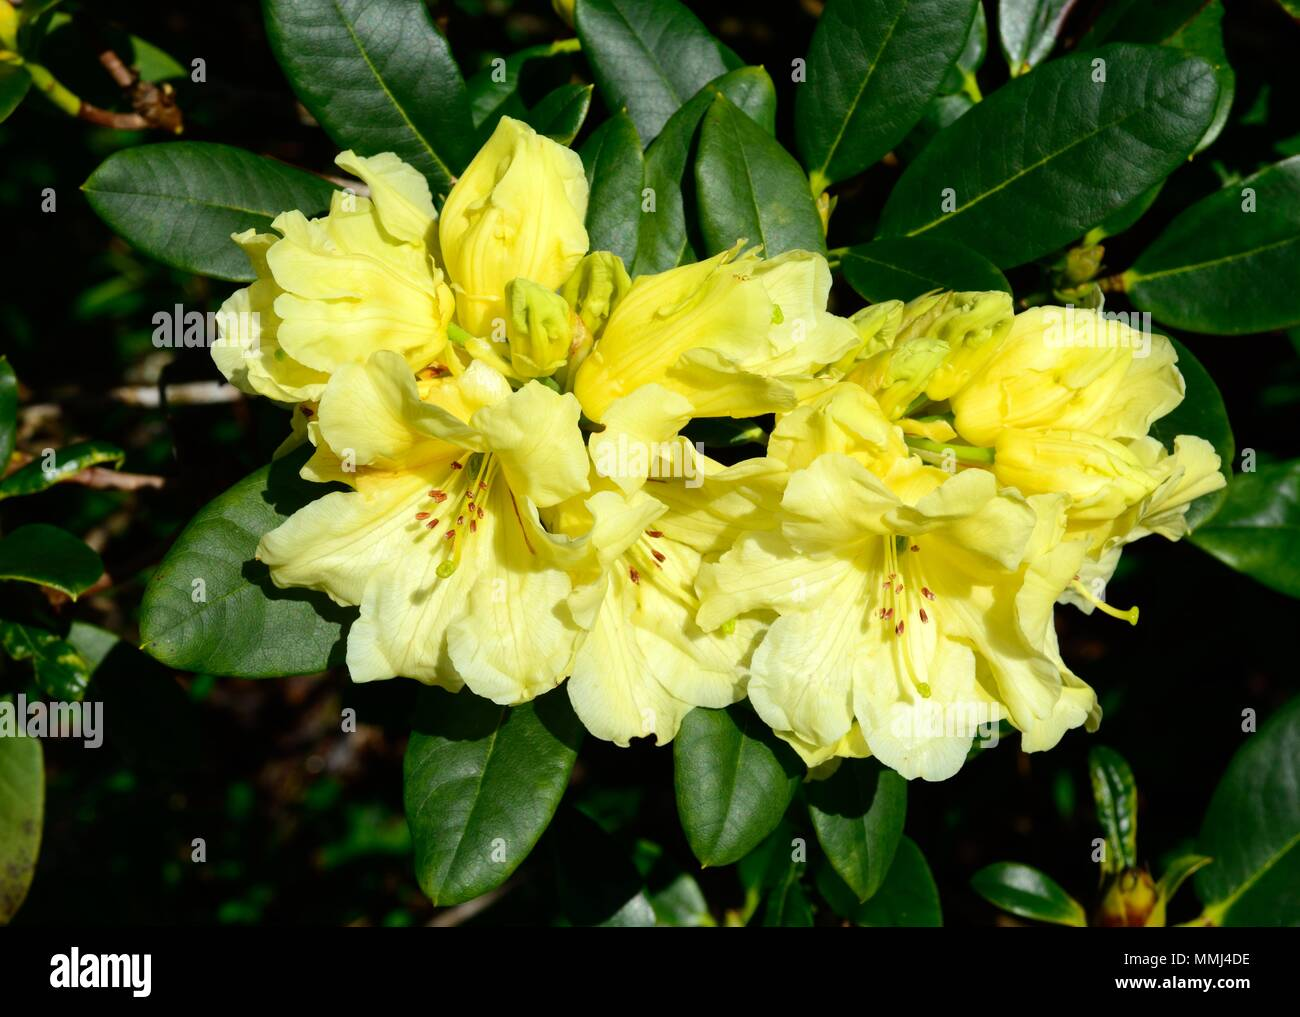 Rhododendron Yellow Petticoats Flowers Stock Photo 184795450 Alamy